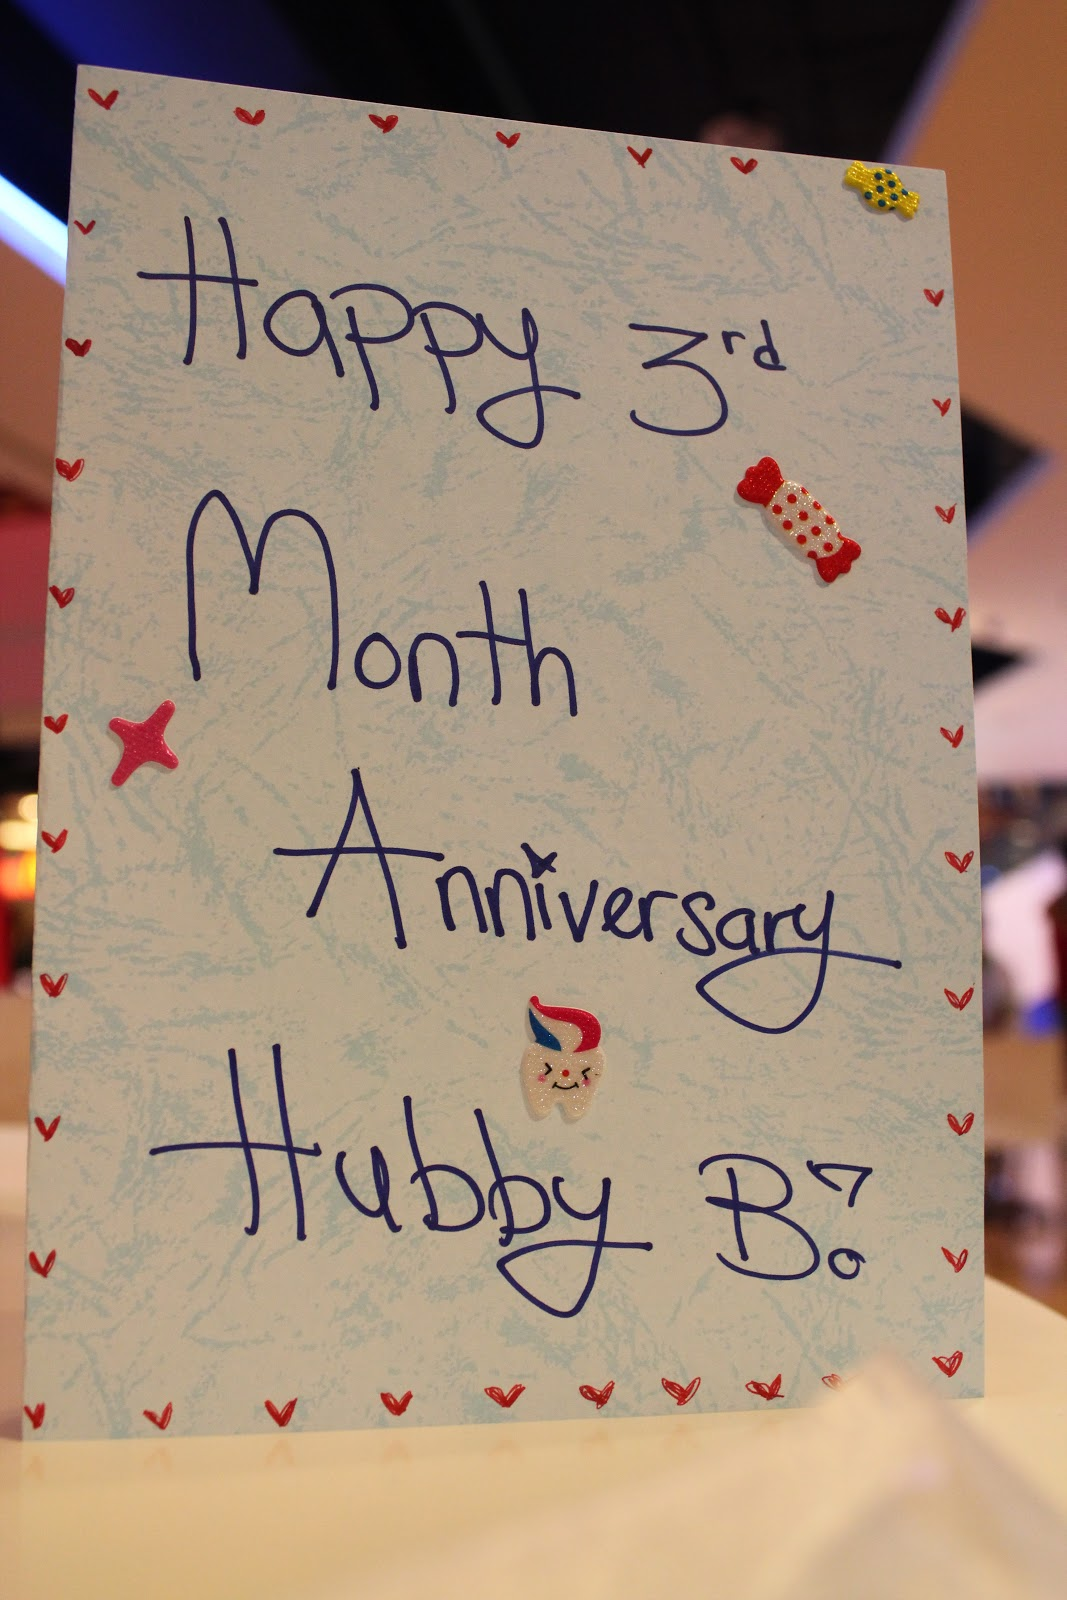 happy one month anniversary letter with hubby 3rd month anniversary celebration 1998